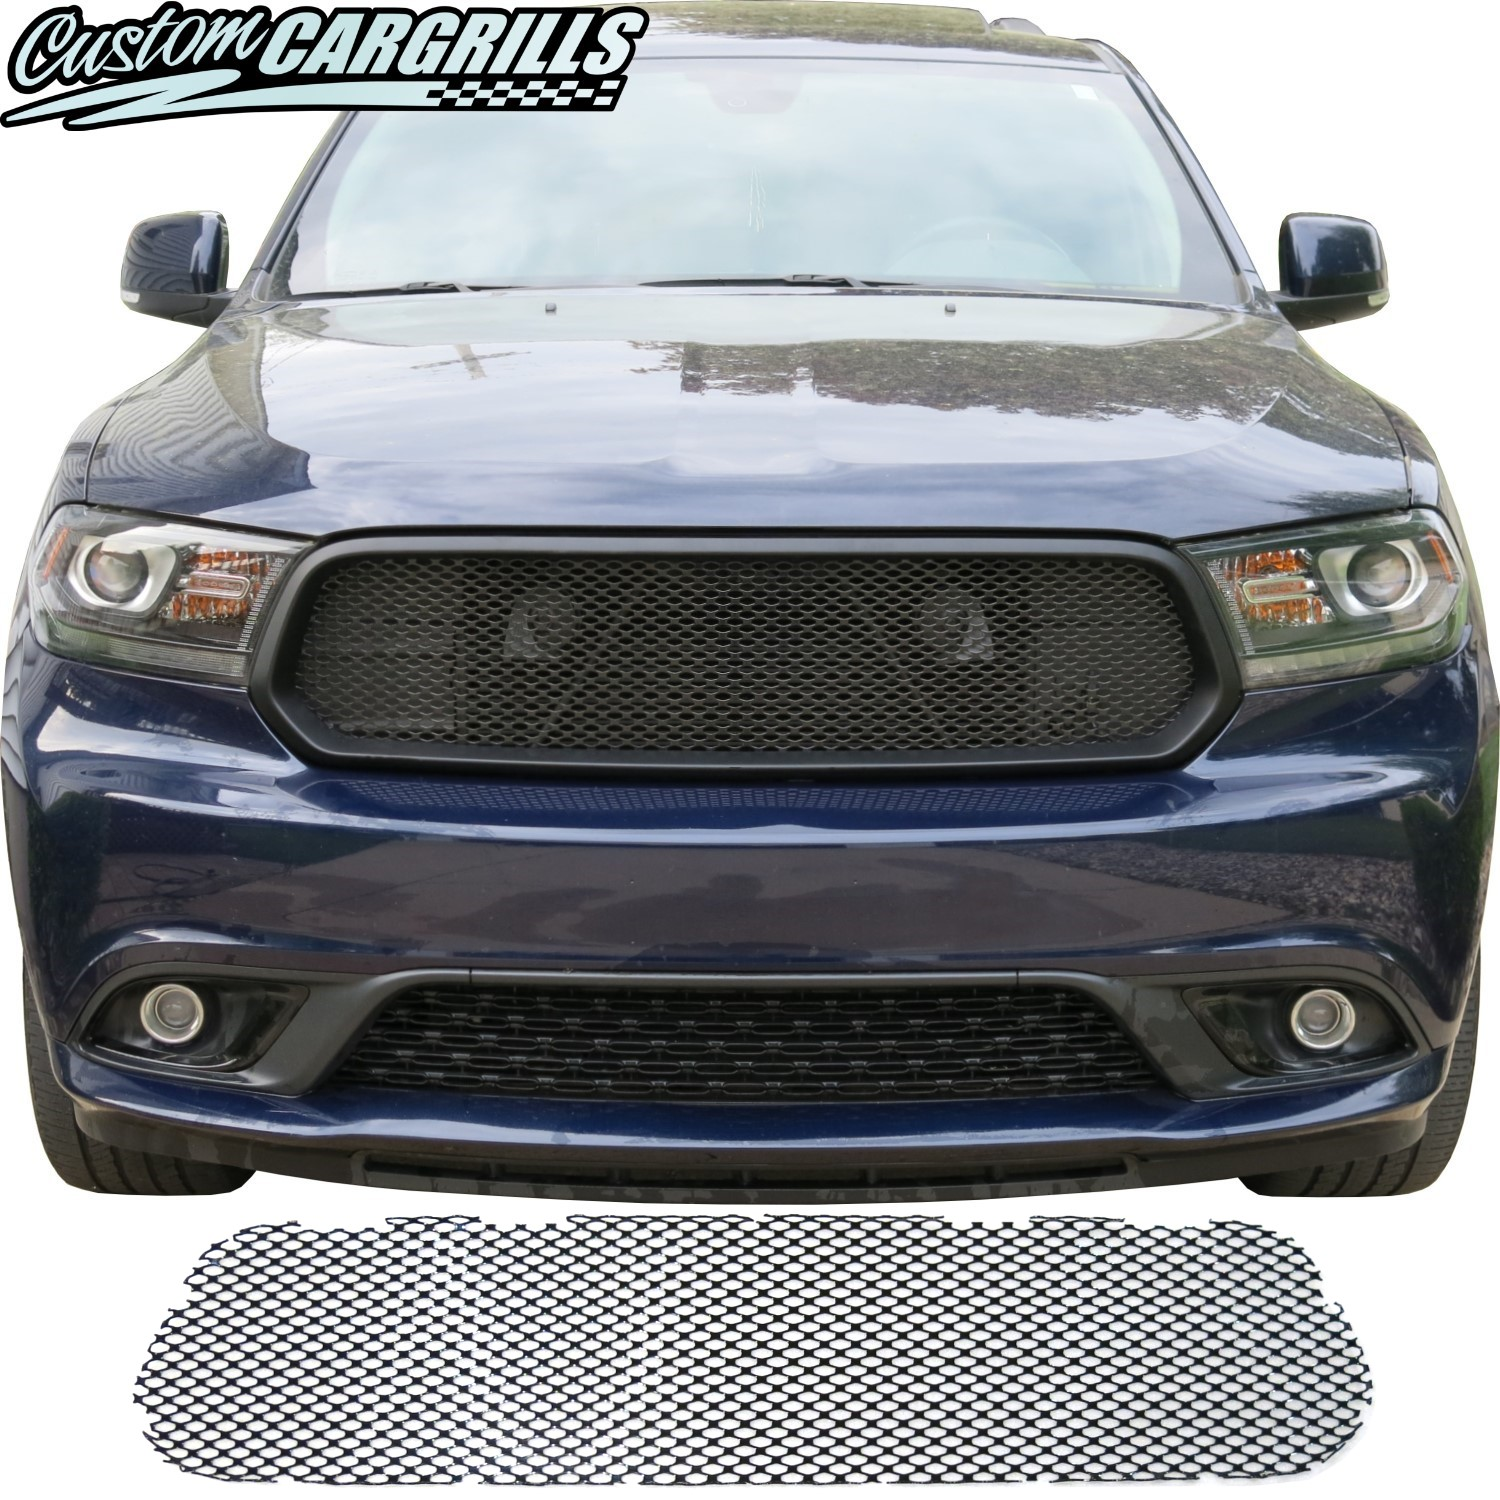 2014 2020 Dodge Durango Grille Mesh Piece By Customcargrills